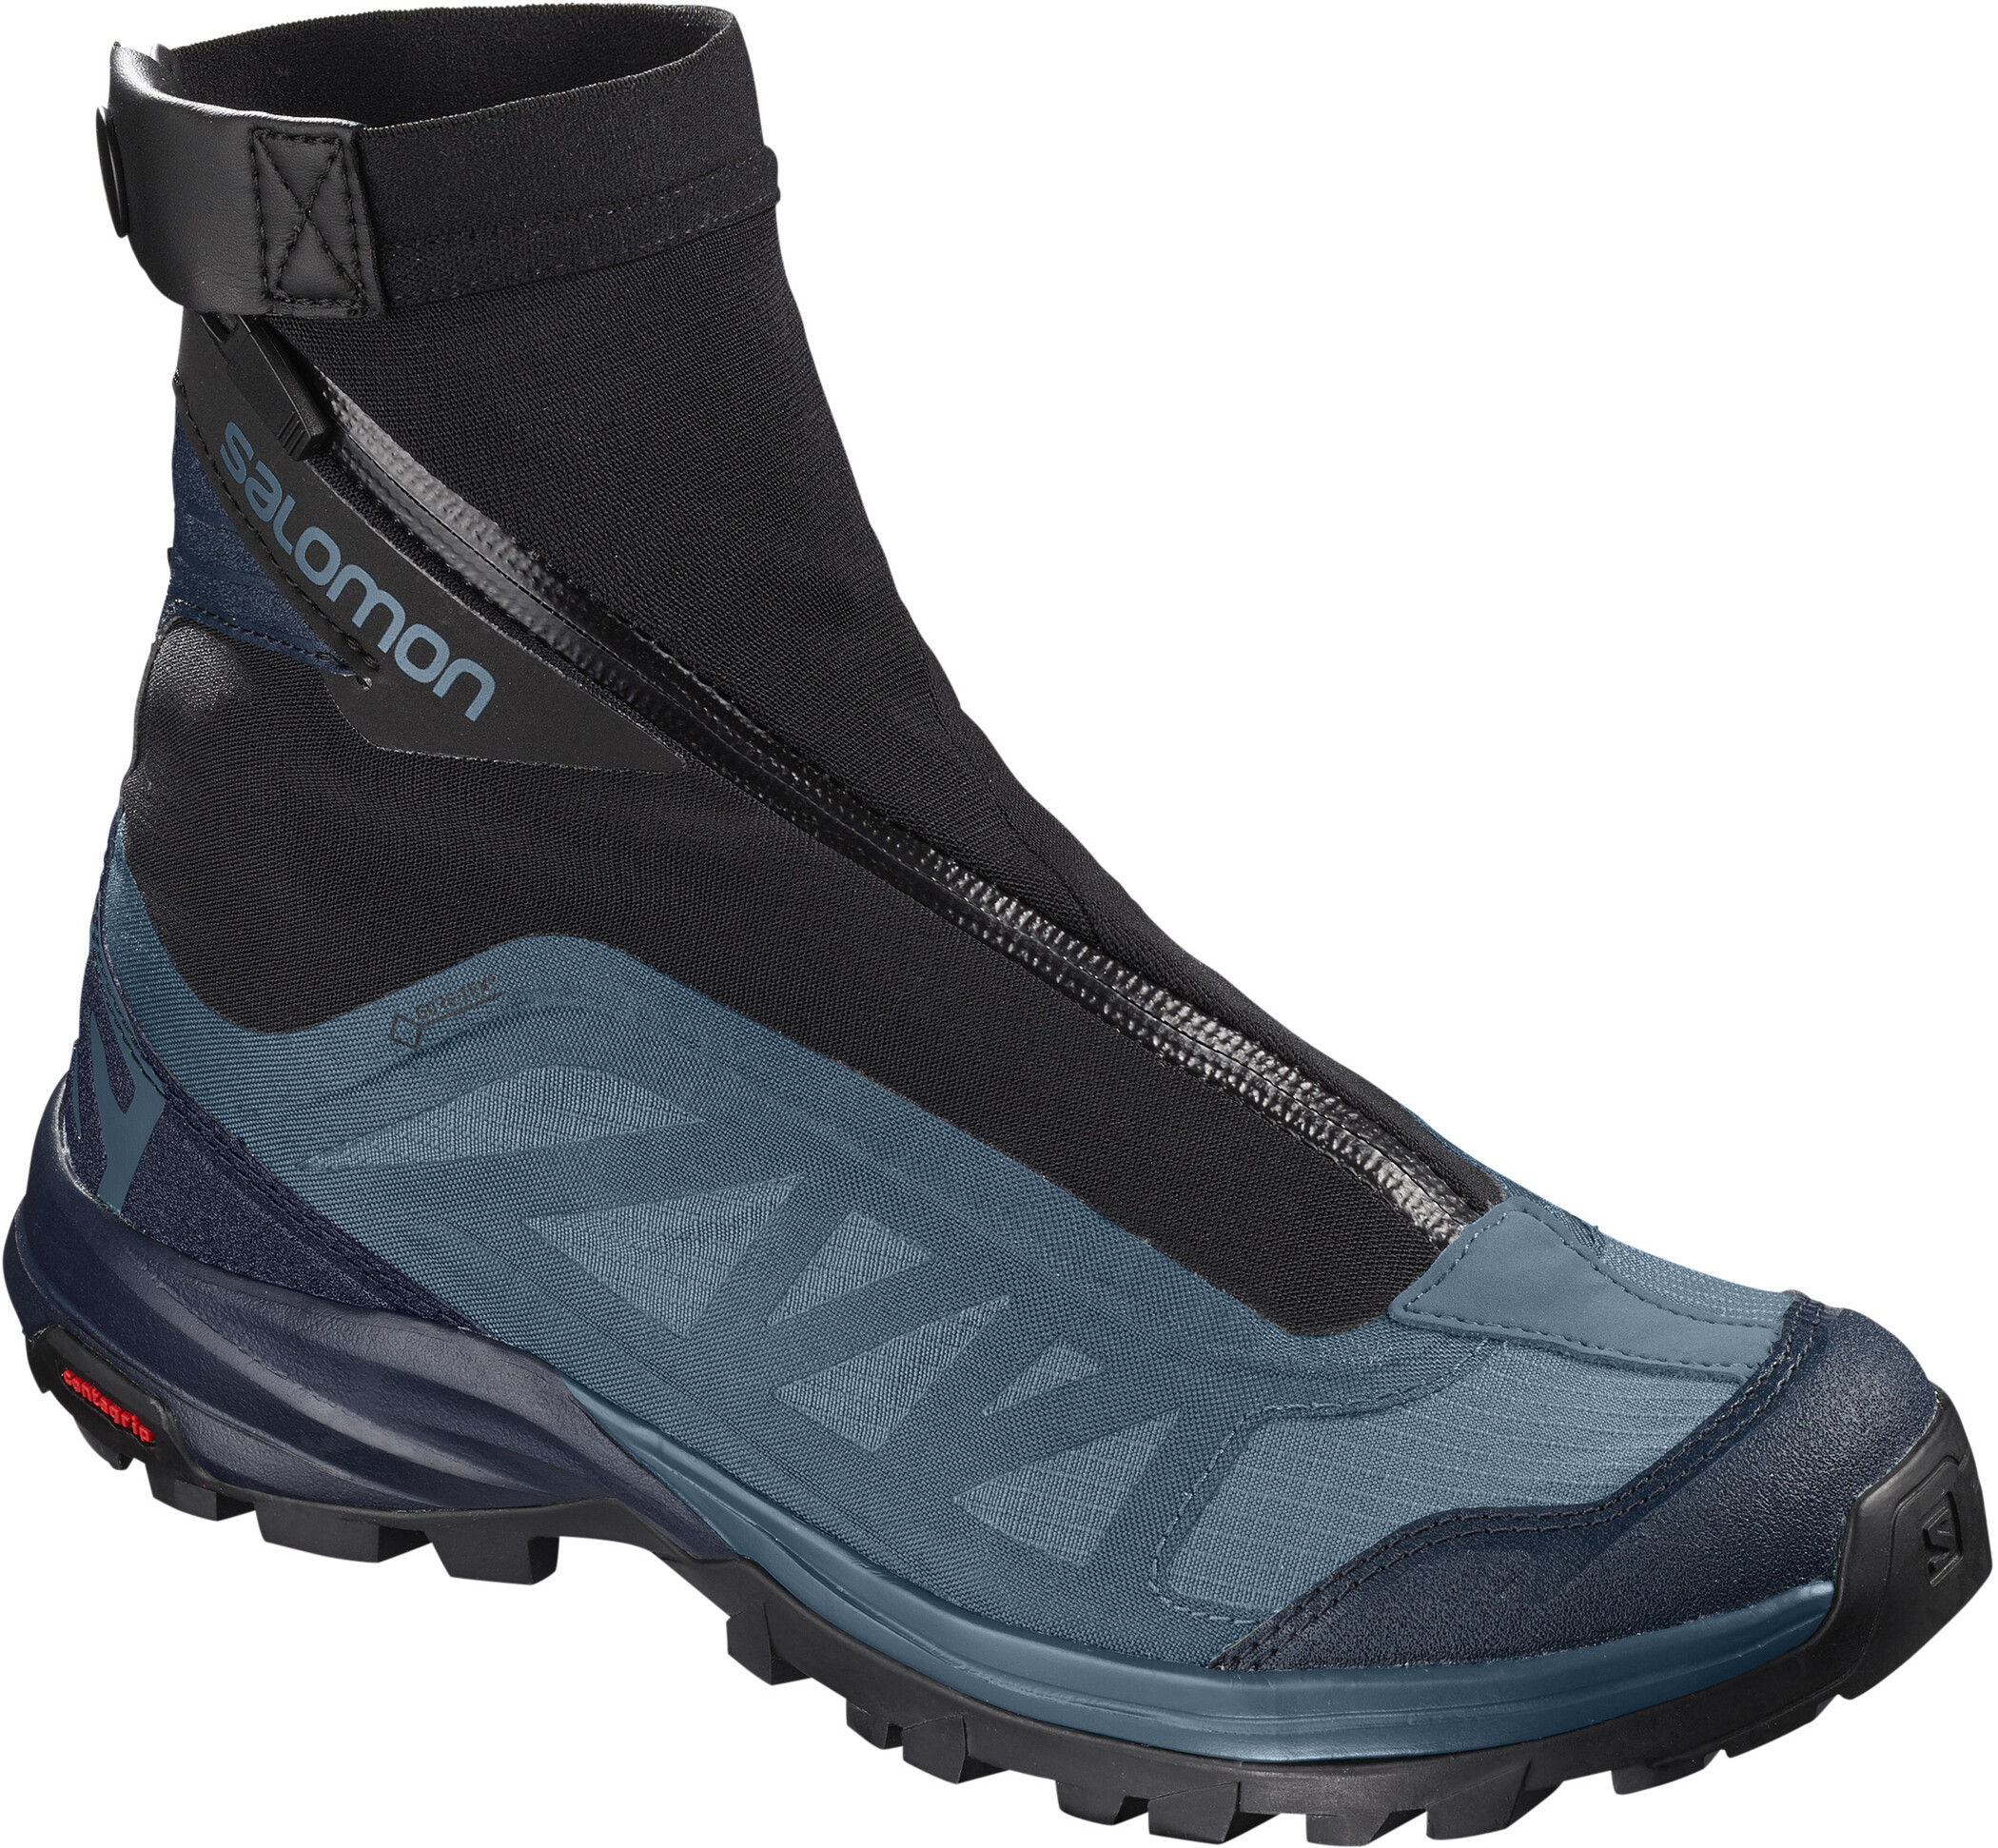 Salomon Outpath Pro GTX Shoes Dam mallard bluenavy blazerblack